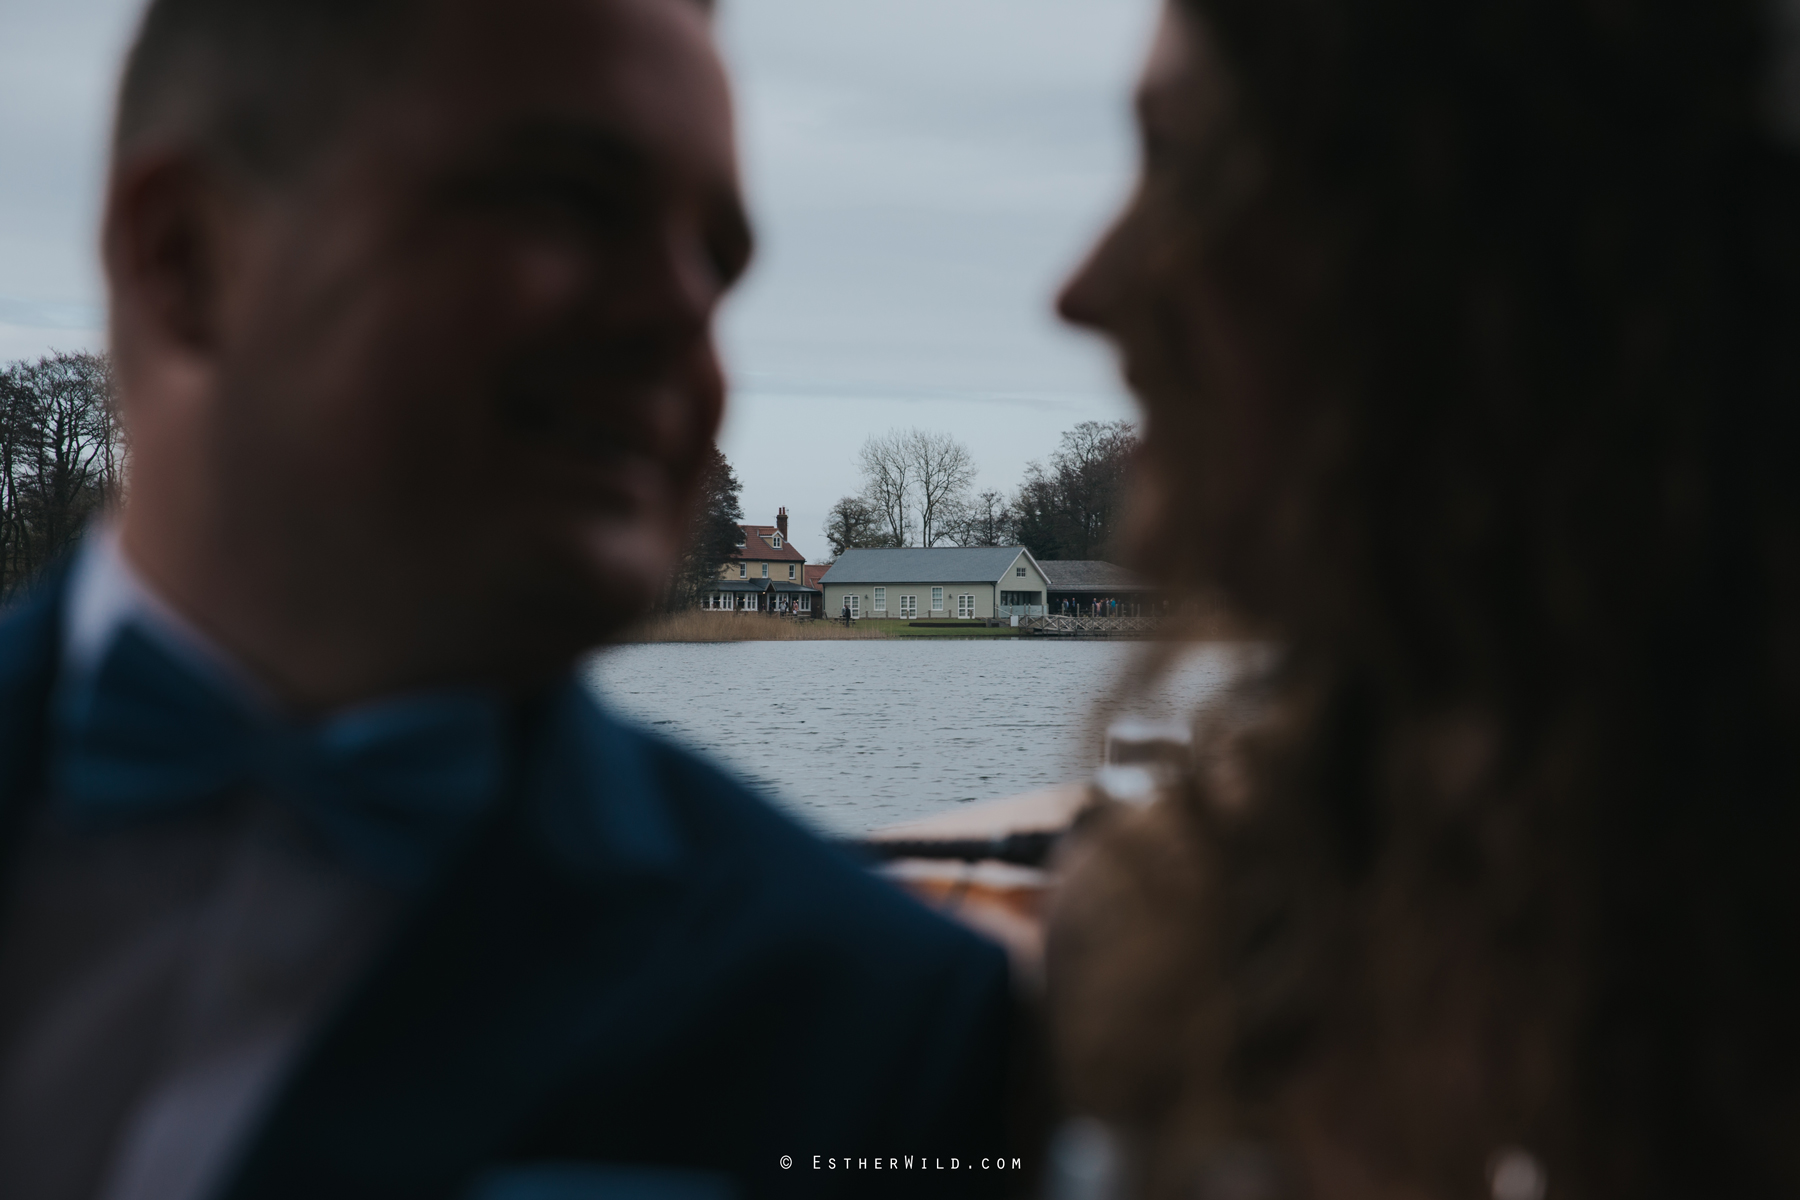 The_BoatHouse_Wedding_Venue_Ormesby_Norfolk_Broads_Boat_Wedding_Photography_Esther_Wild_Photographer_IMG_1588.jpg